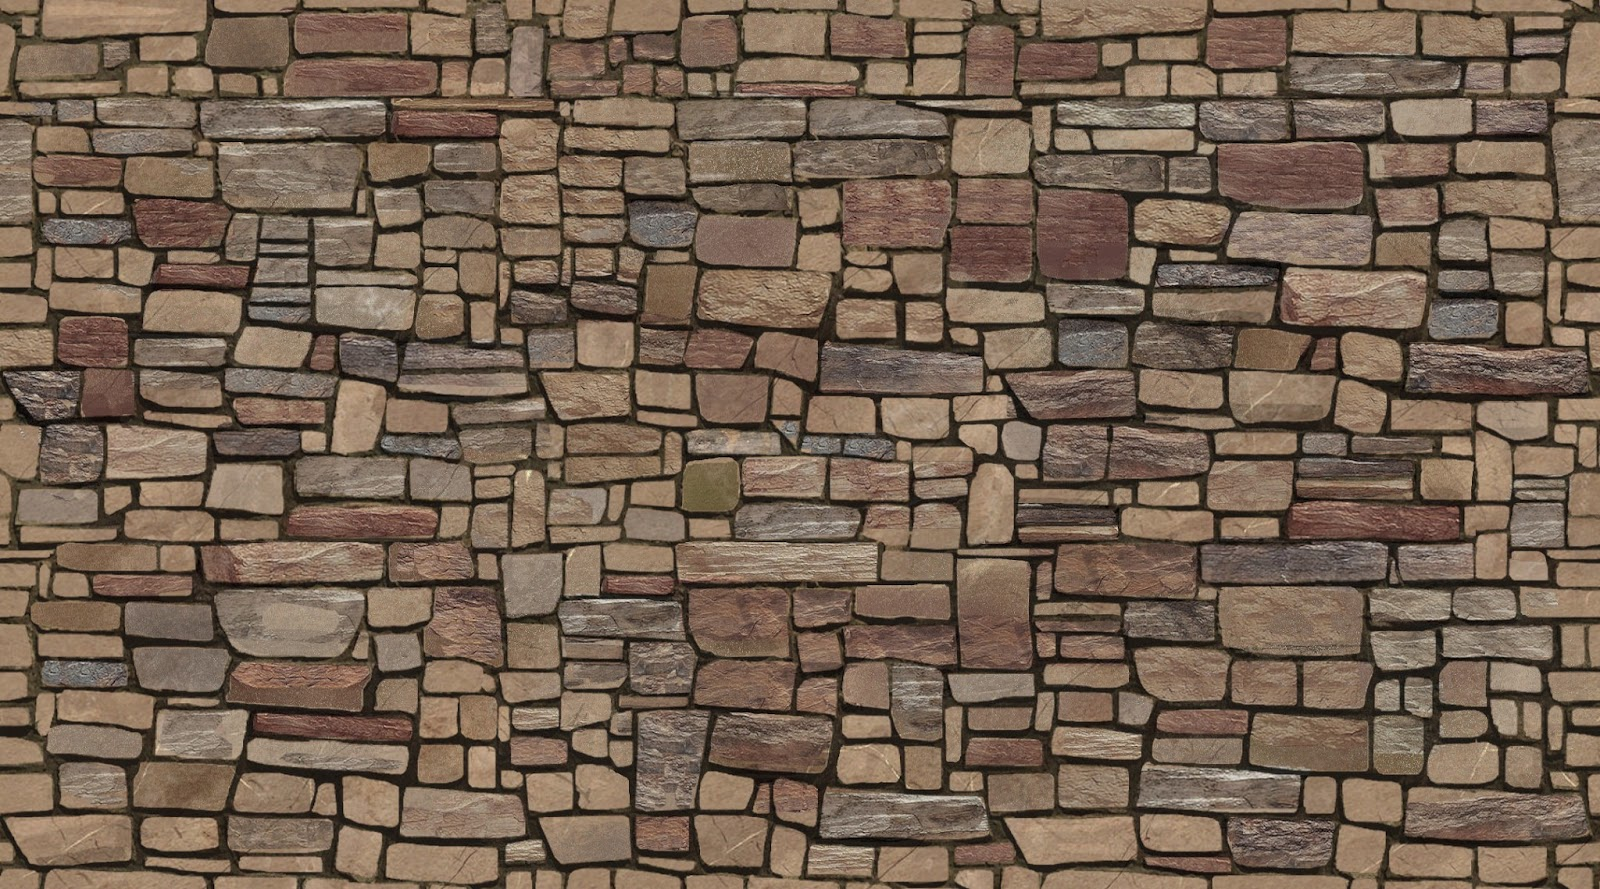 stone tile texture. Simple Tile Various Stone Tiles 02 For Tile Texture